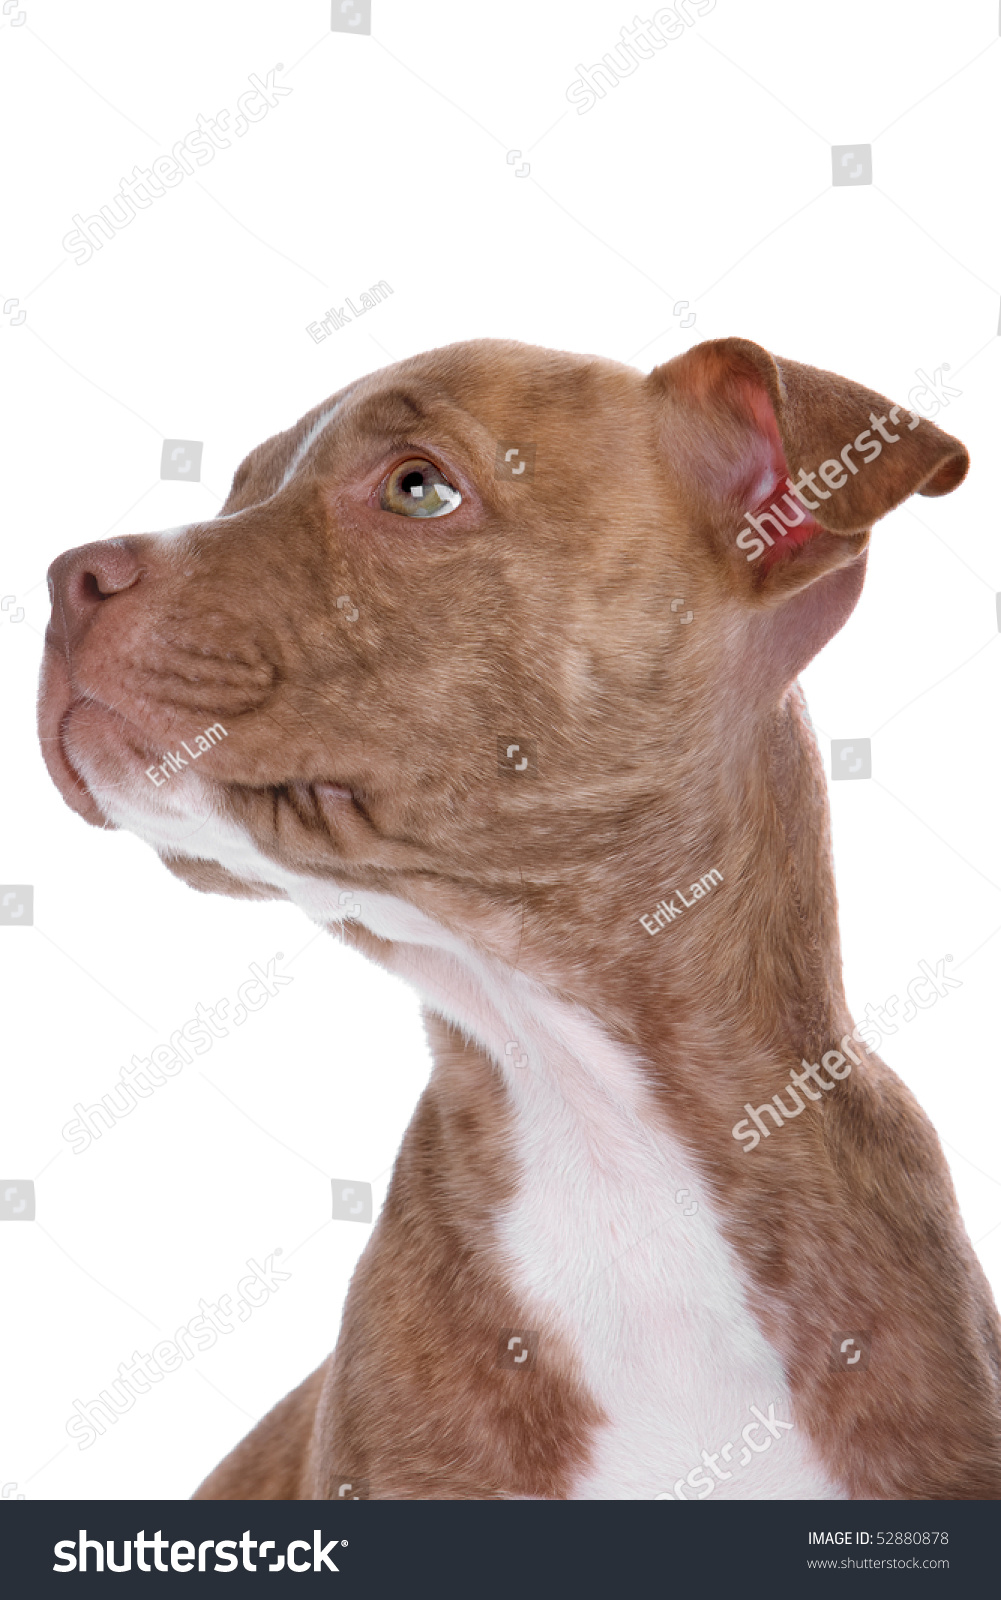 how to raise a red nose pitbull puppy